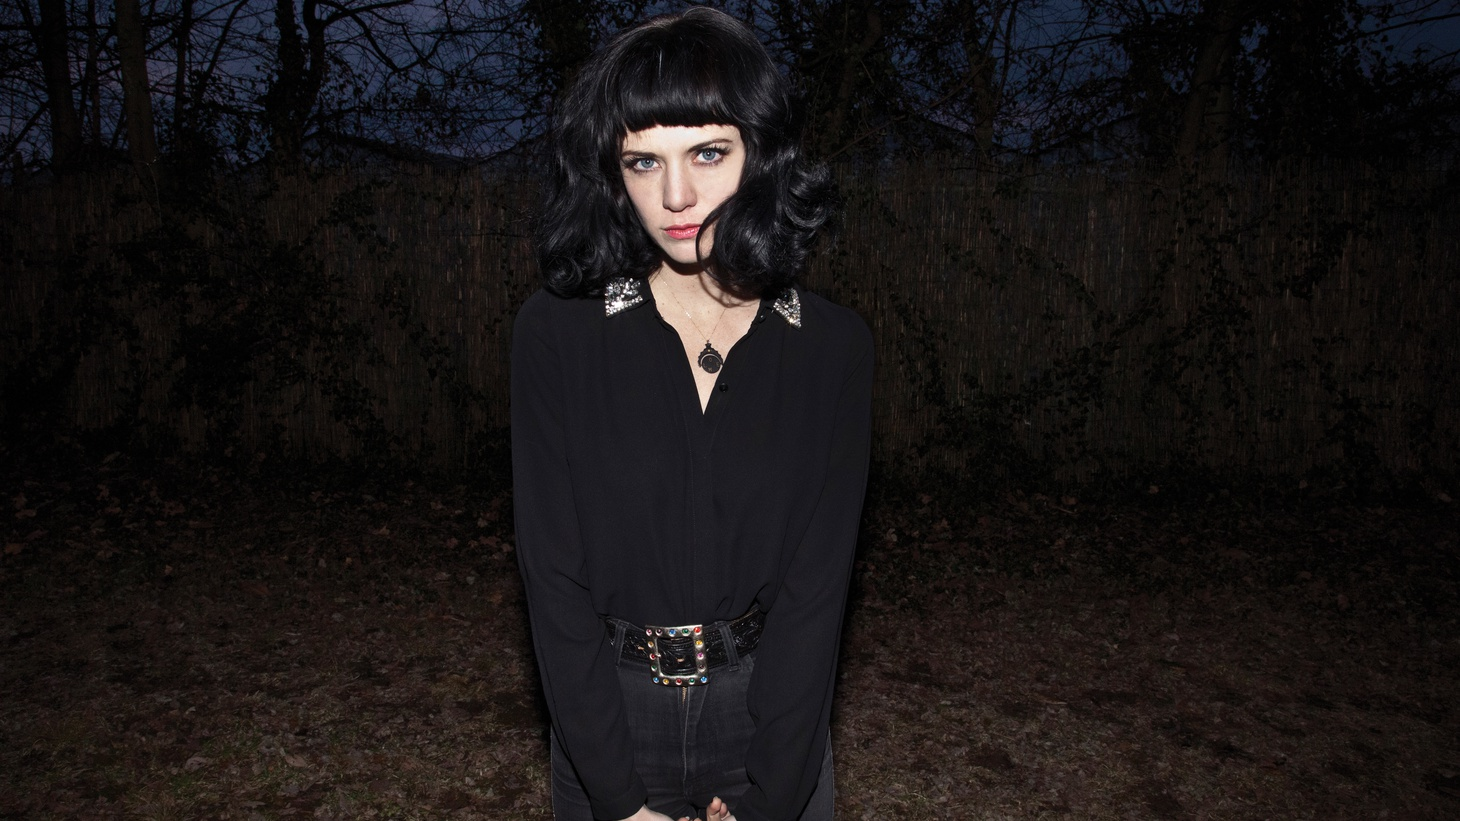 Nashville's Nikki Lane has a bold new country sound that has her poised for stardom.